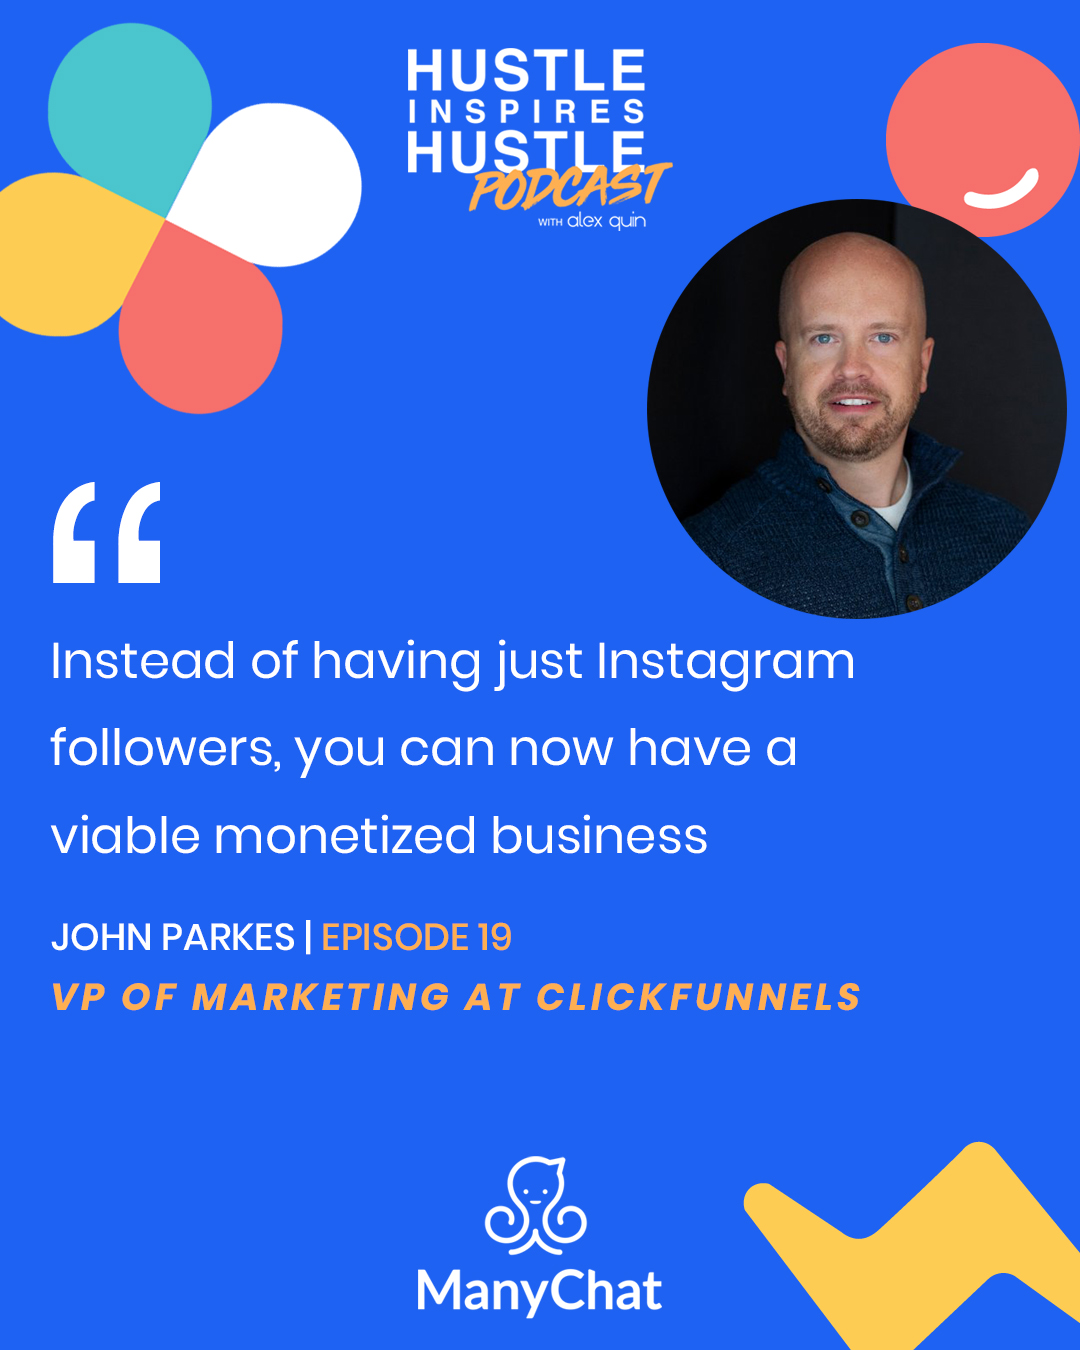 John Parkes & Alex Quin - On Hustle Inspires Hustle Podcast.